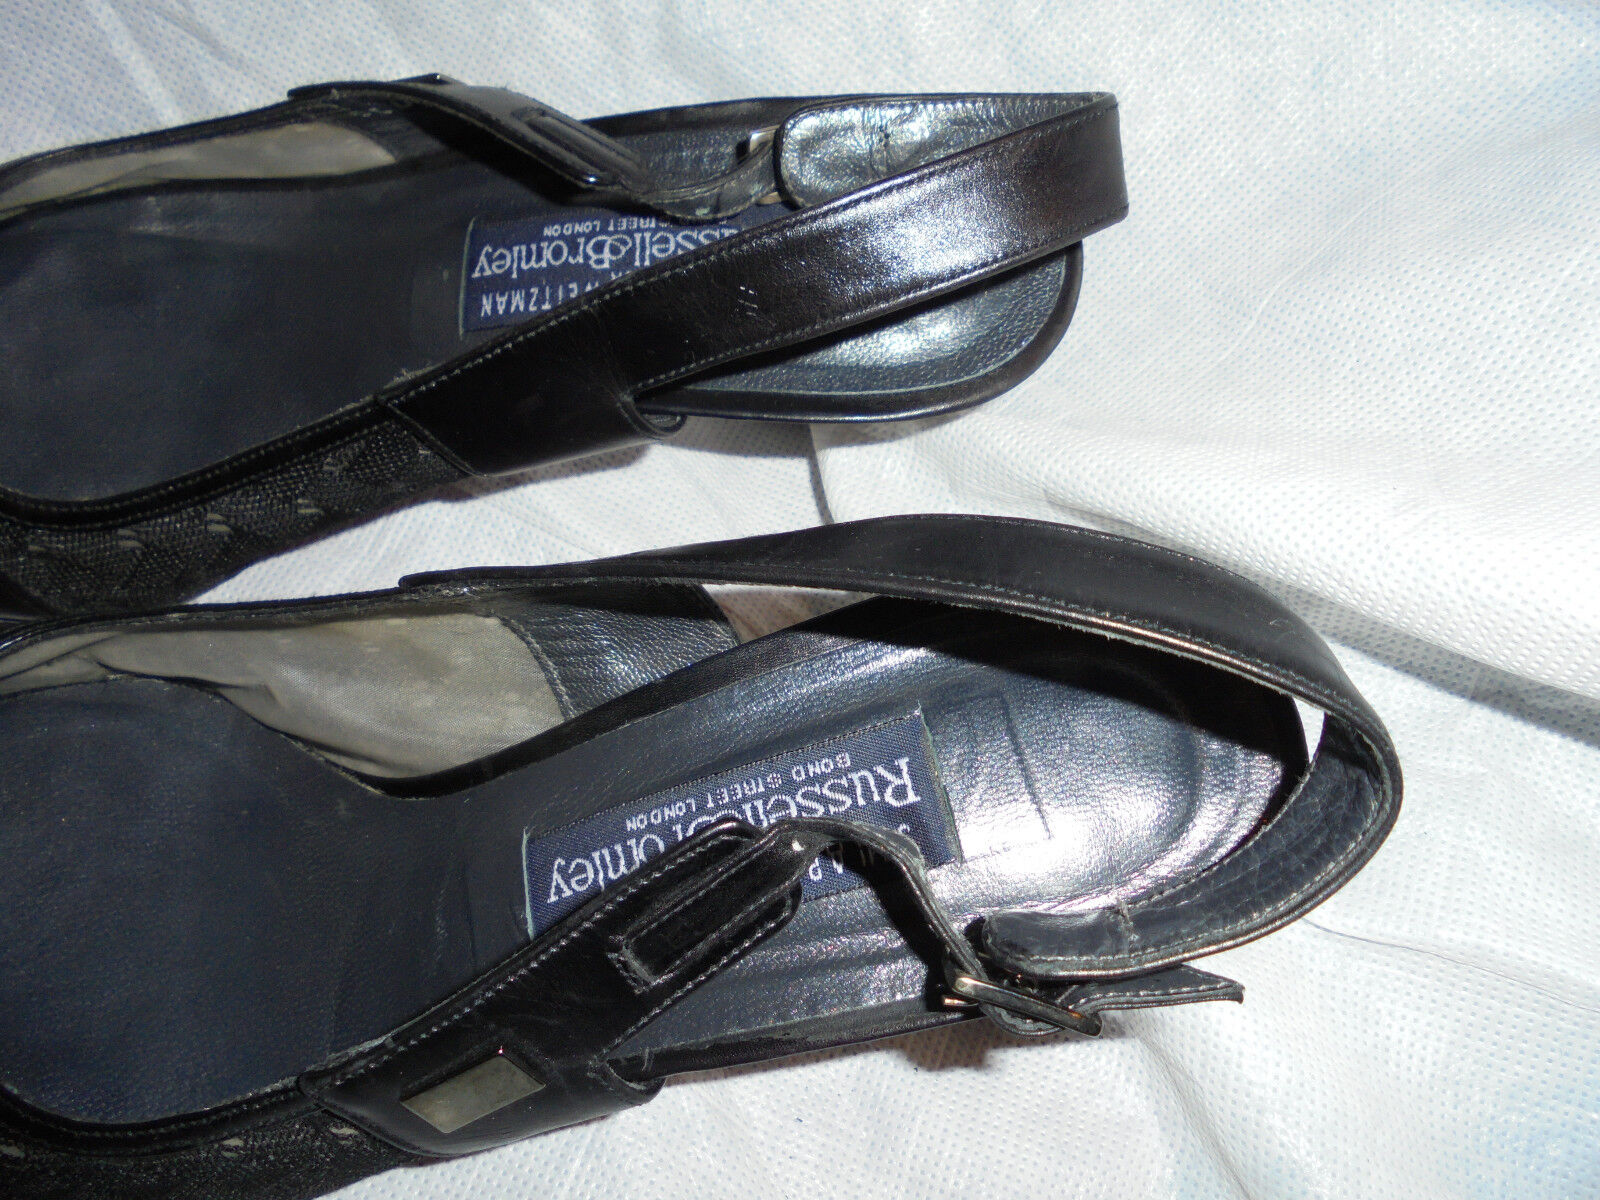 RUSSELL & BROMLEY WOMEN'S GREY TEXTILE BUCKLE STRAP SANDAL SIZE US UK 4 EU 37 US SIZE 7 32d3ab